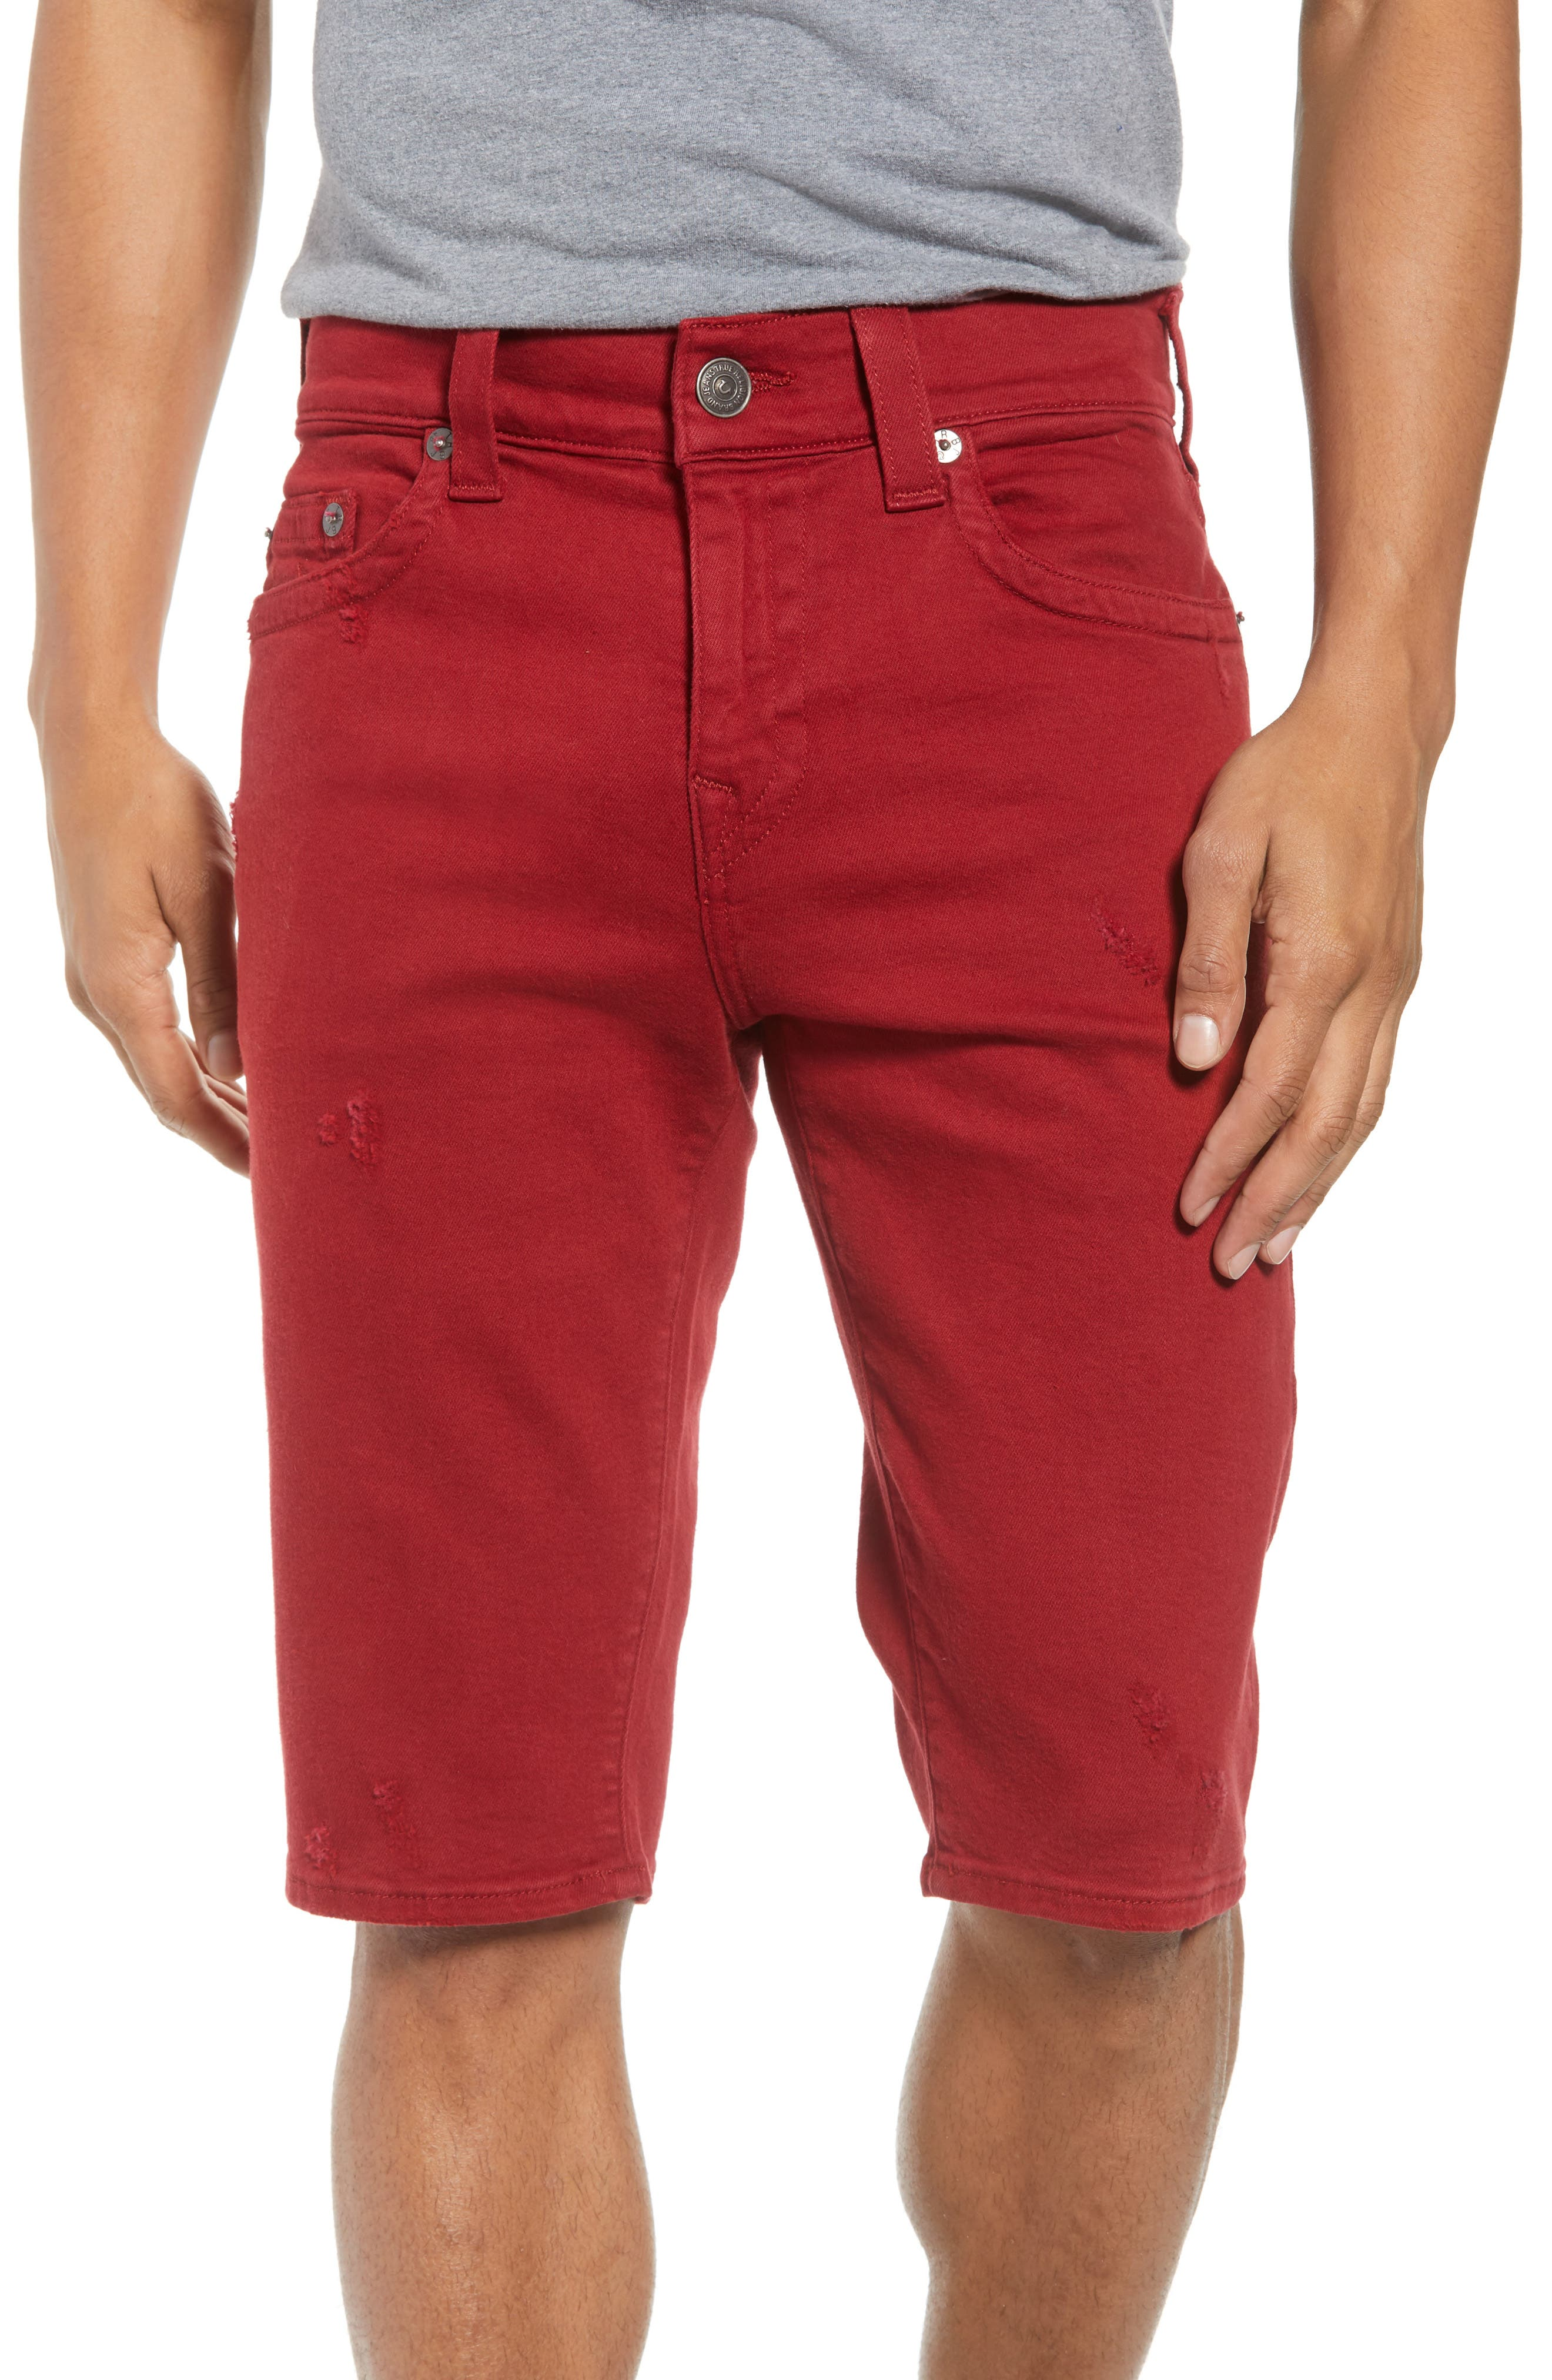 Ricky Relaxed Fit Shorts,                         Main,                         color, Firecracker Red